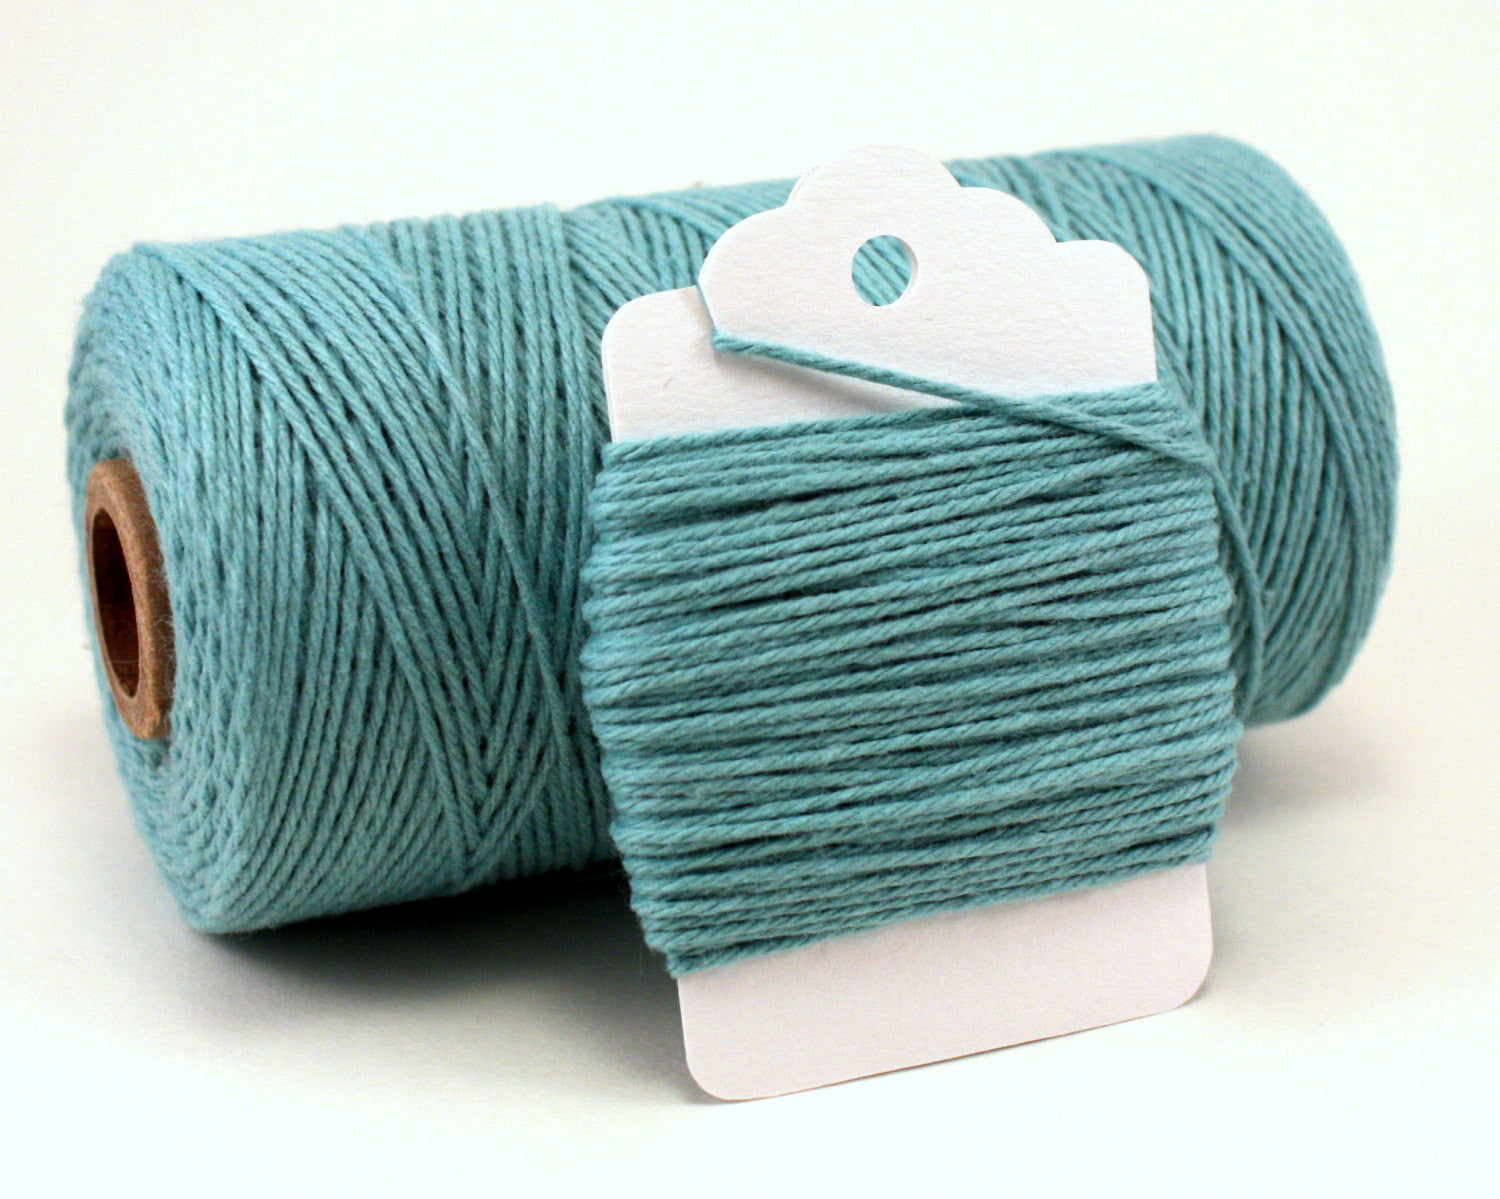 Teal Baker's Twine